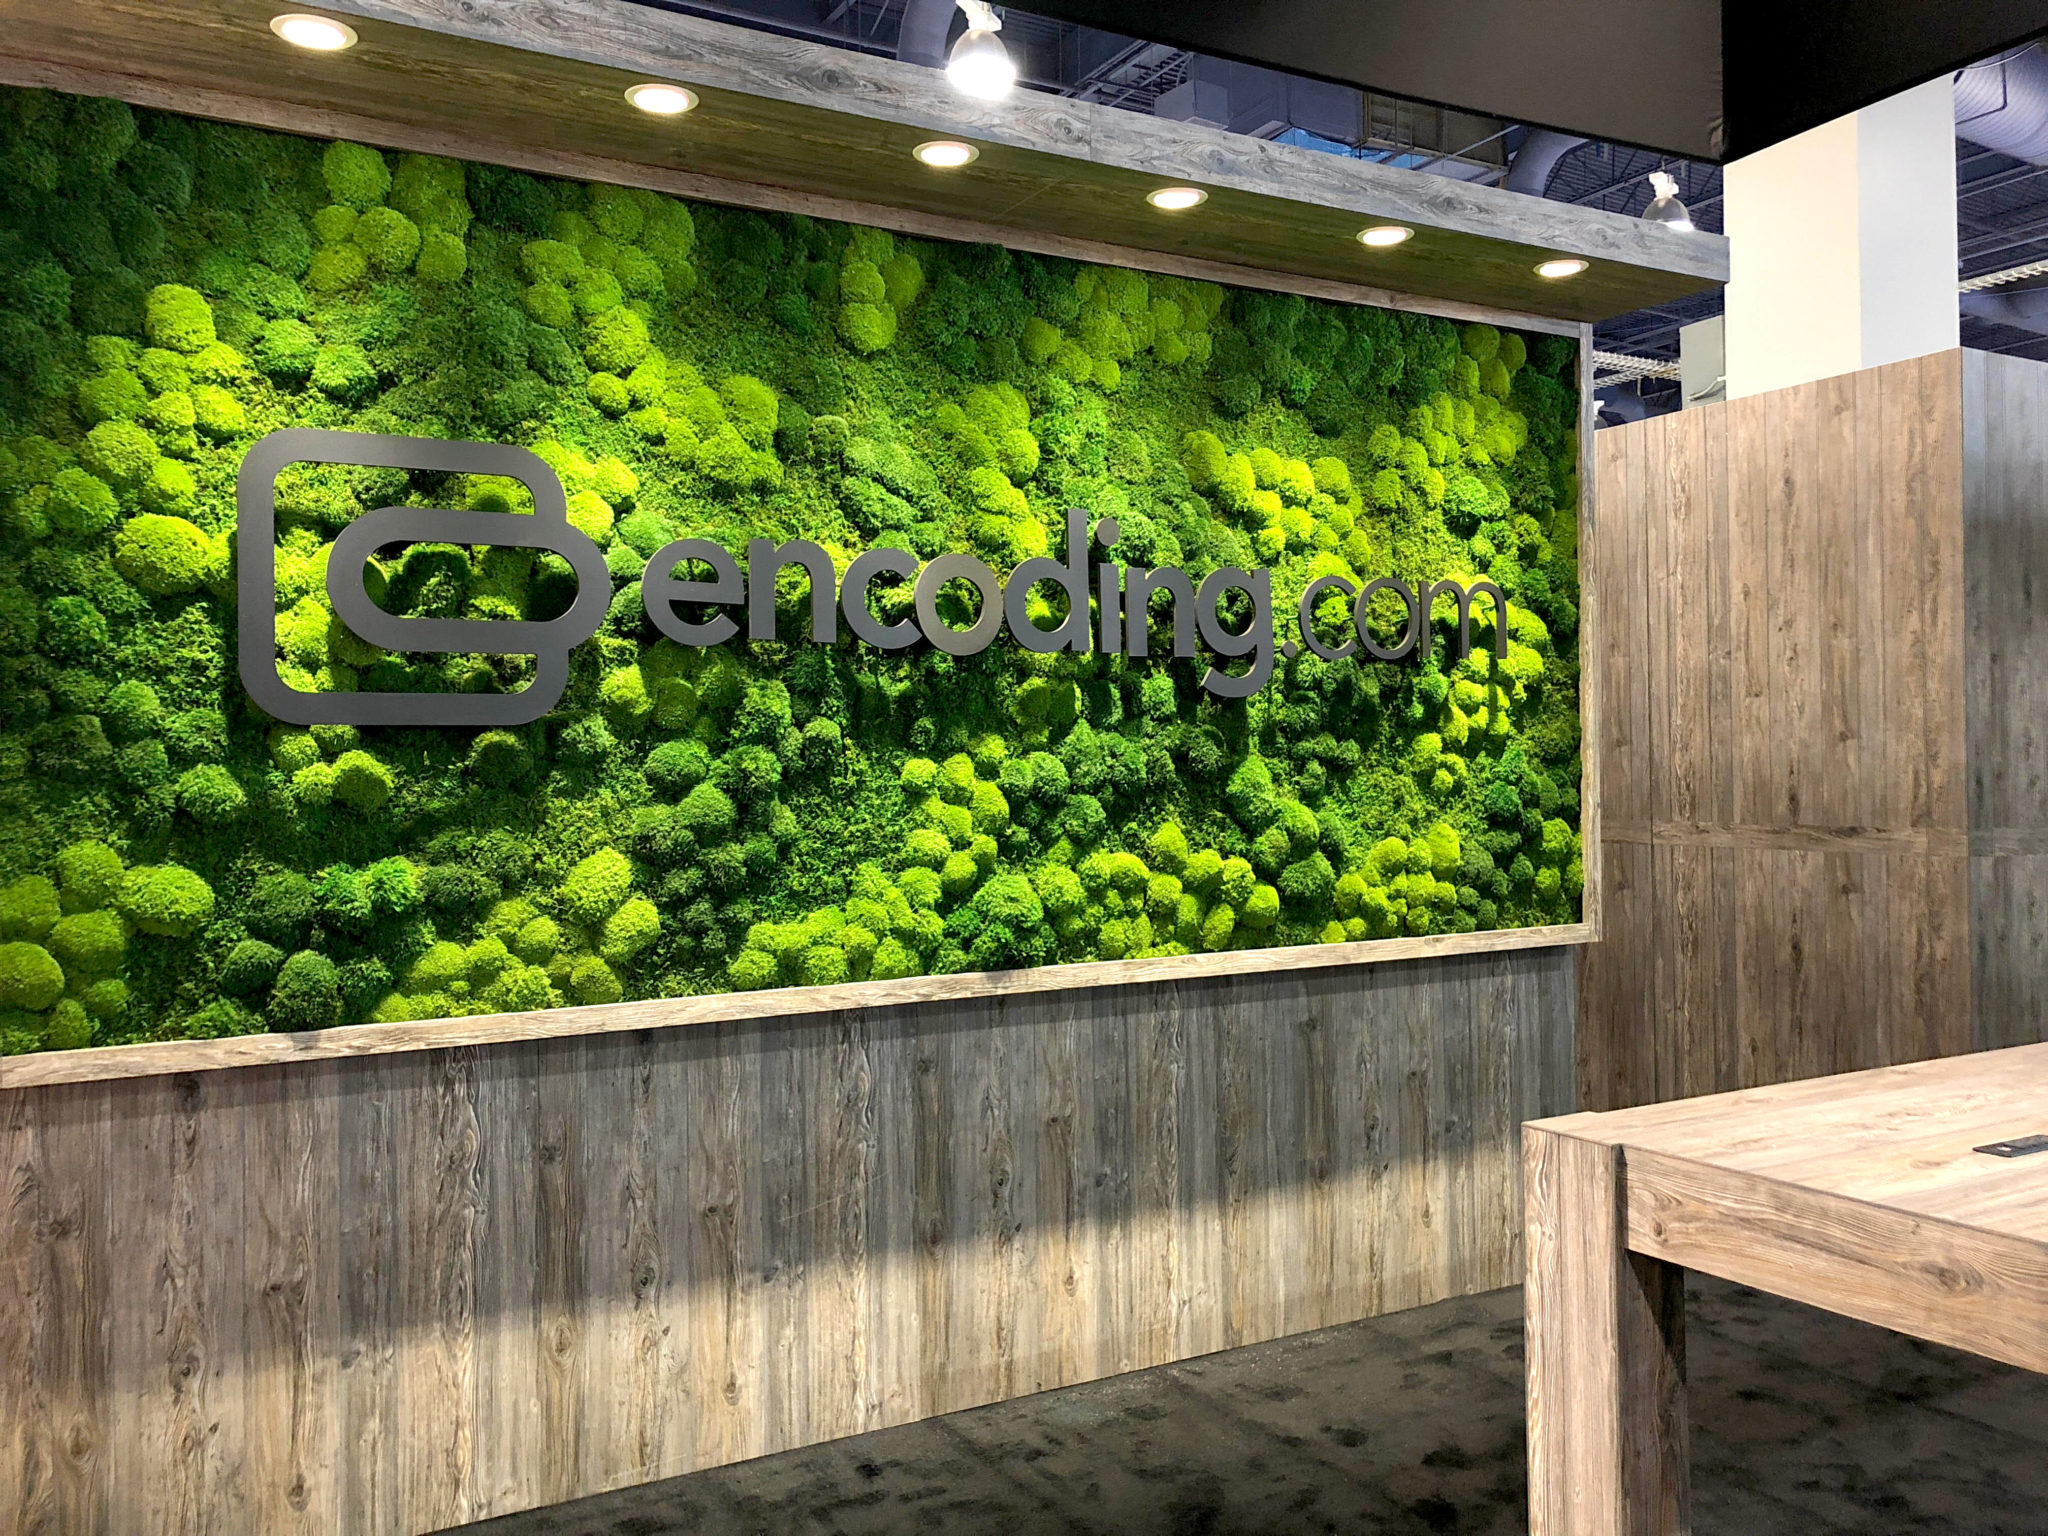 Custom Moss Walls Amp Installations For Commercial Spaces Artisan Moss